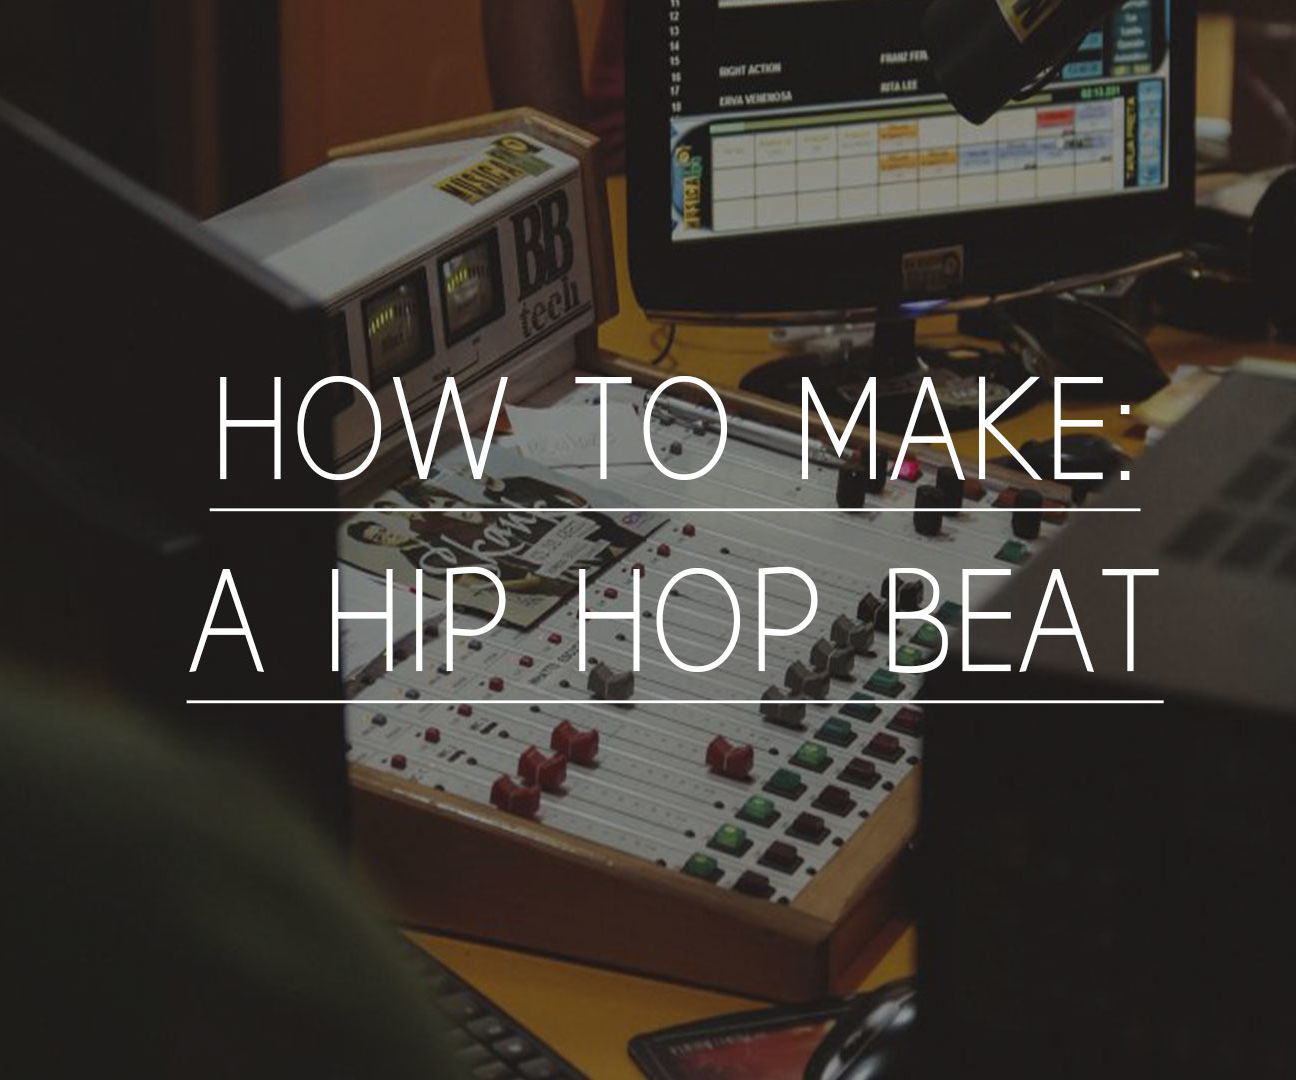 Your own Hip-Hop Beat